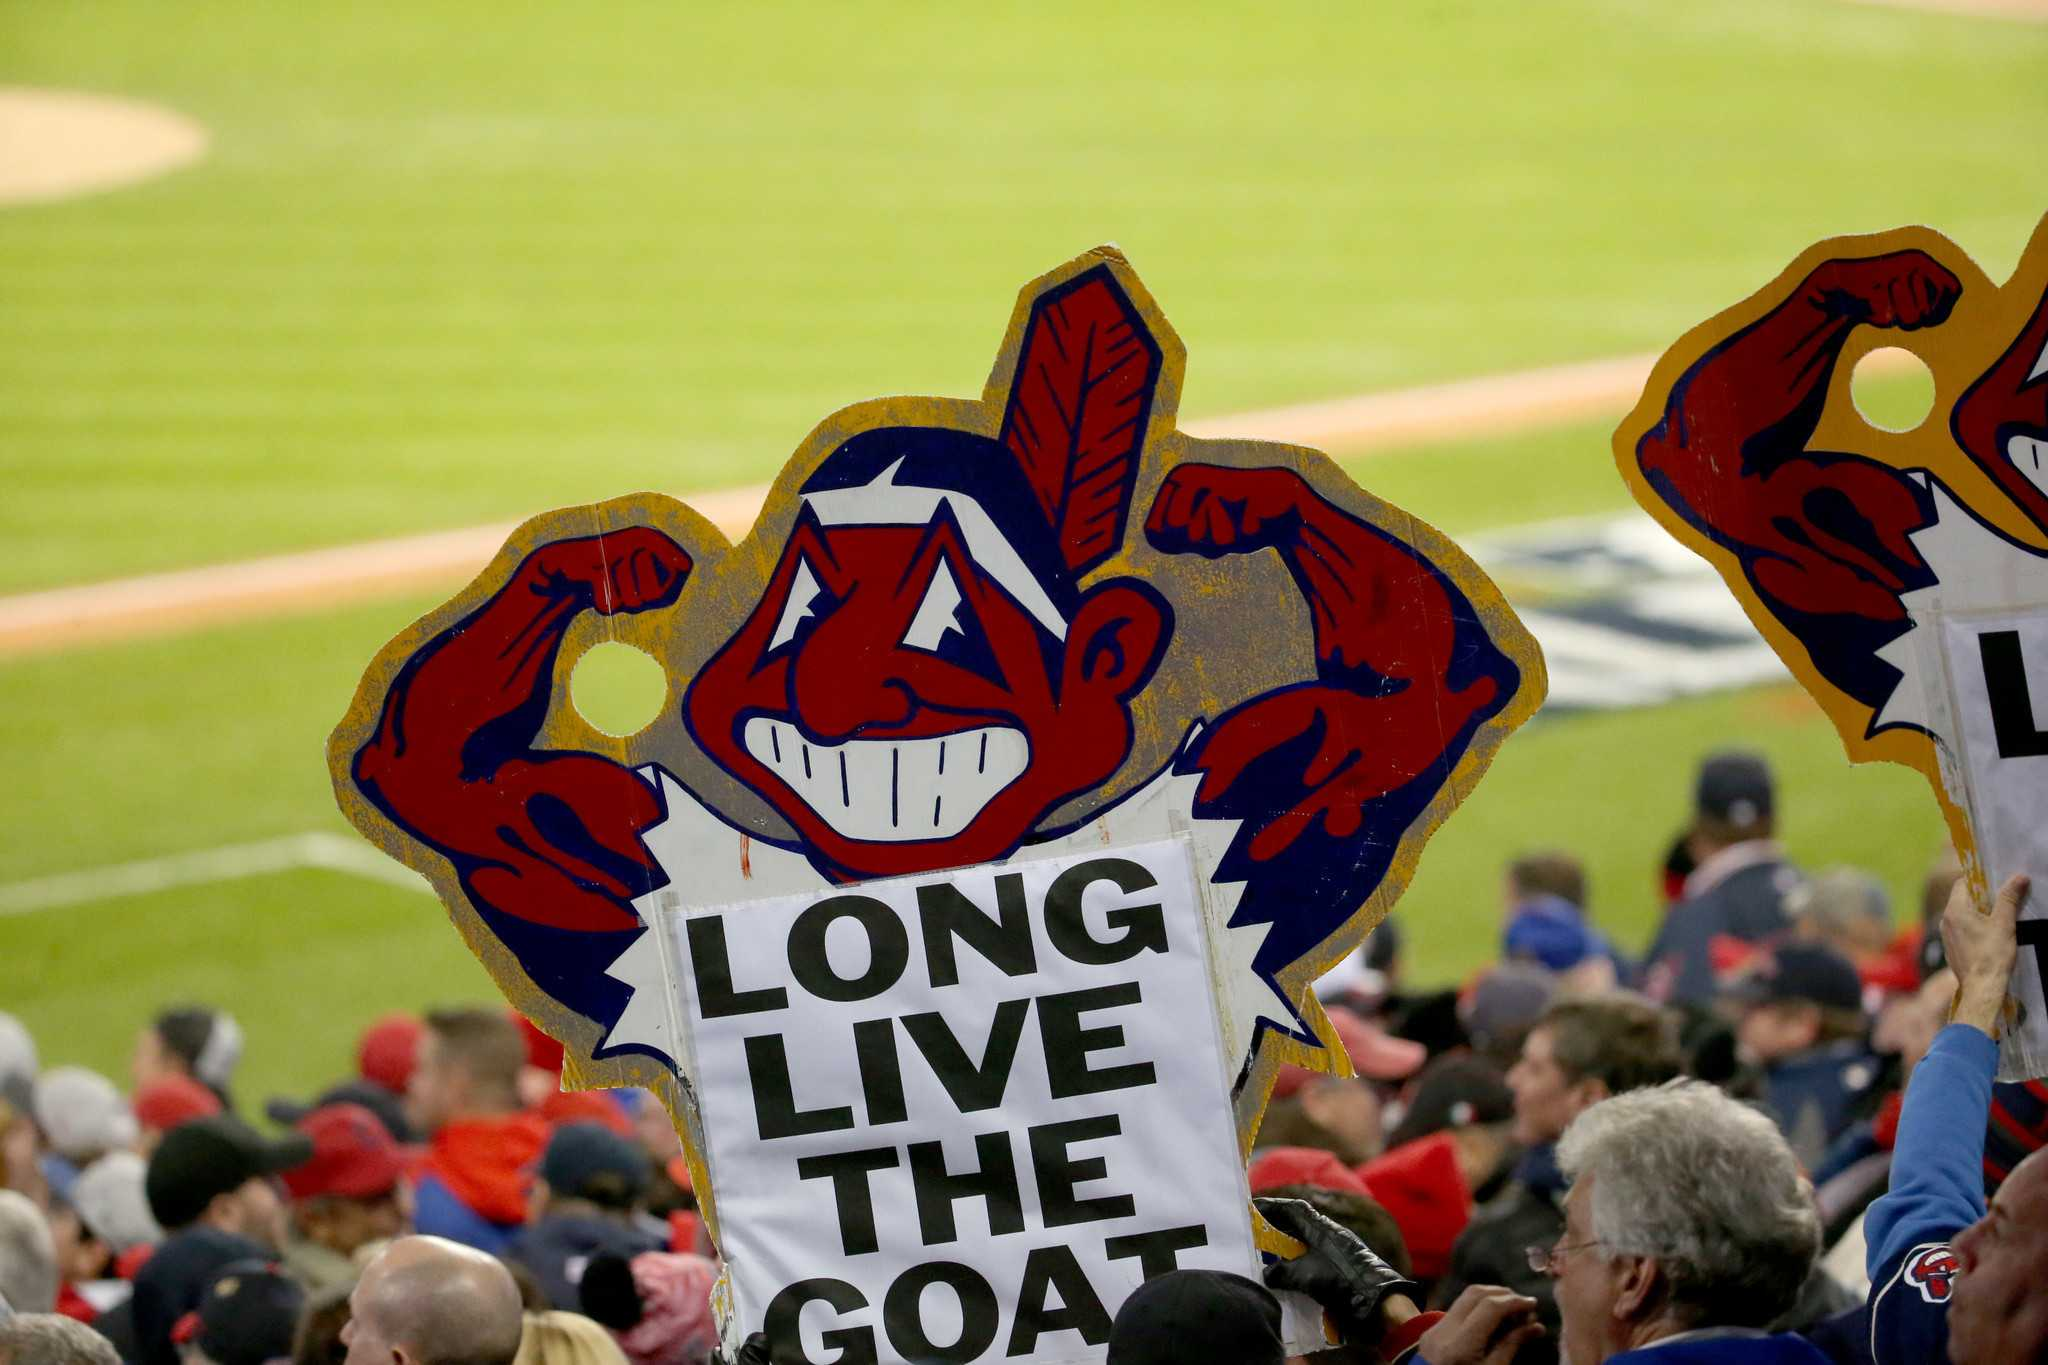 Cleveland Indians Still Discussing Name Change, Says President Antonetti